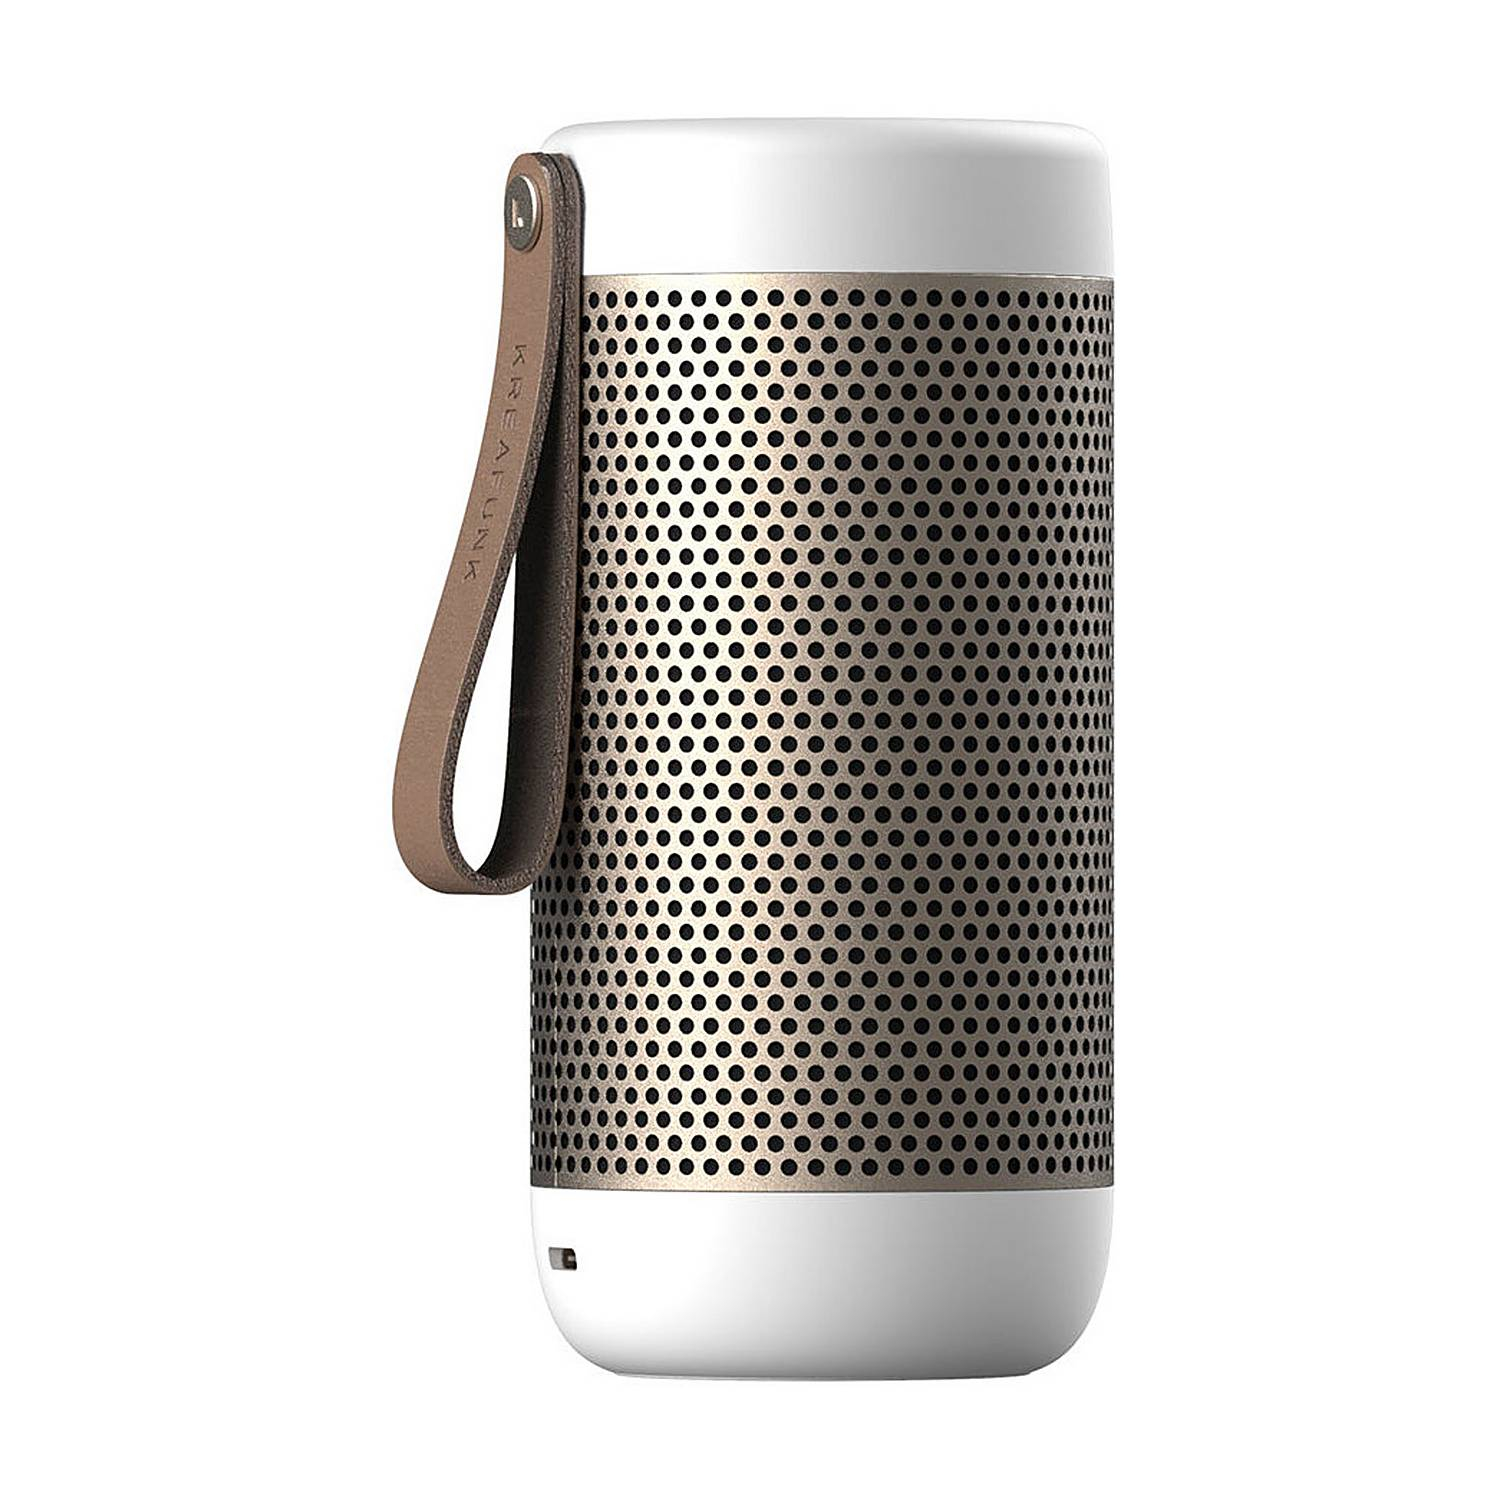 ACOUSTIC altoparlante bluetooth bianco by Kreafunk